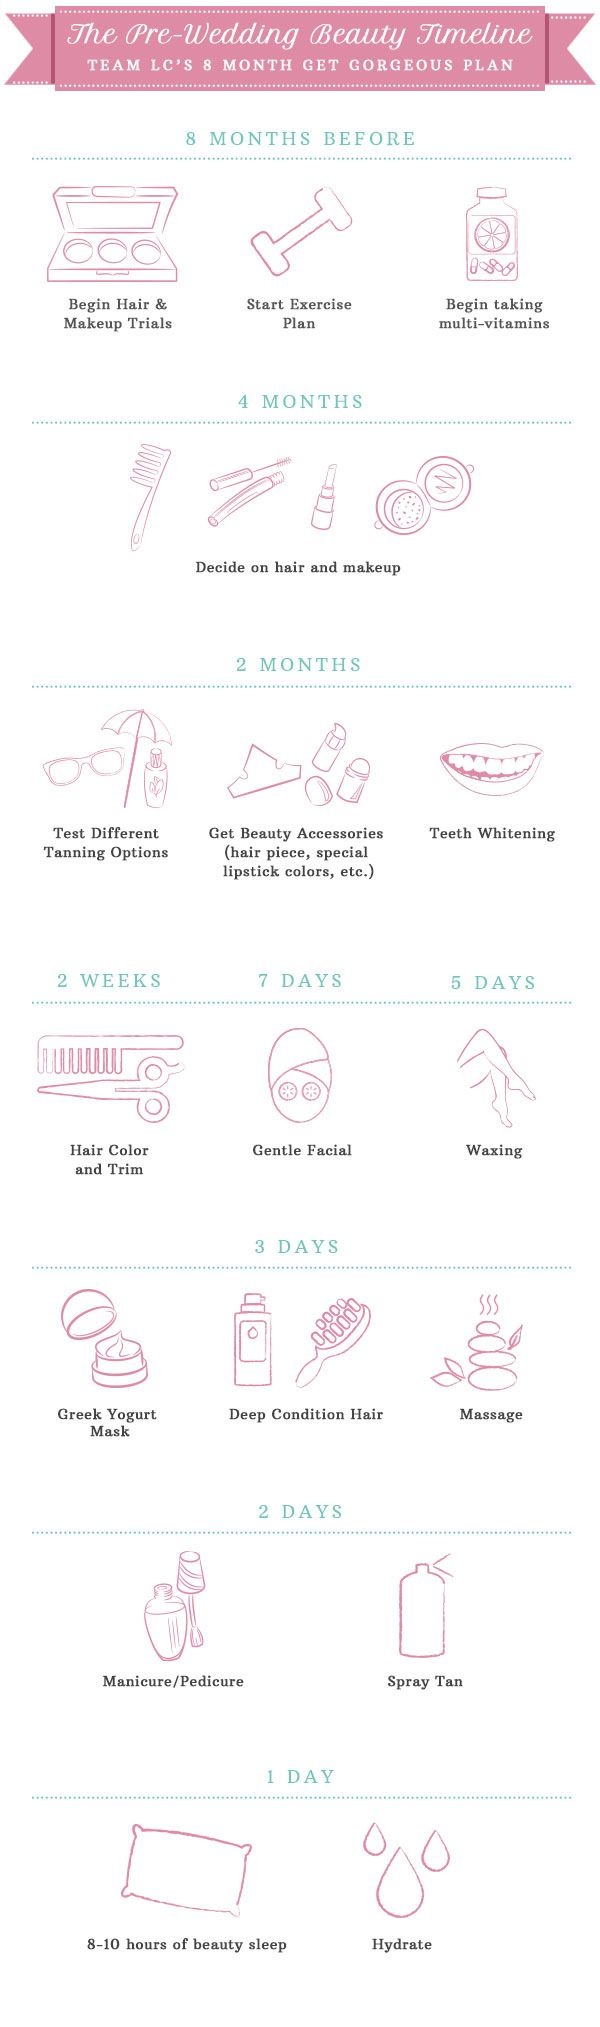 bridal beauty planning timeline // a must-pin for your #wedding planning